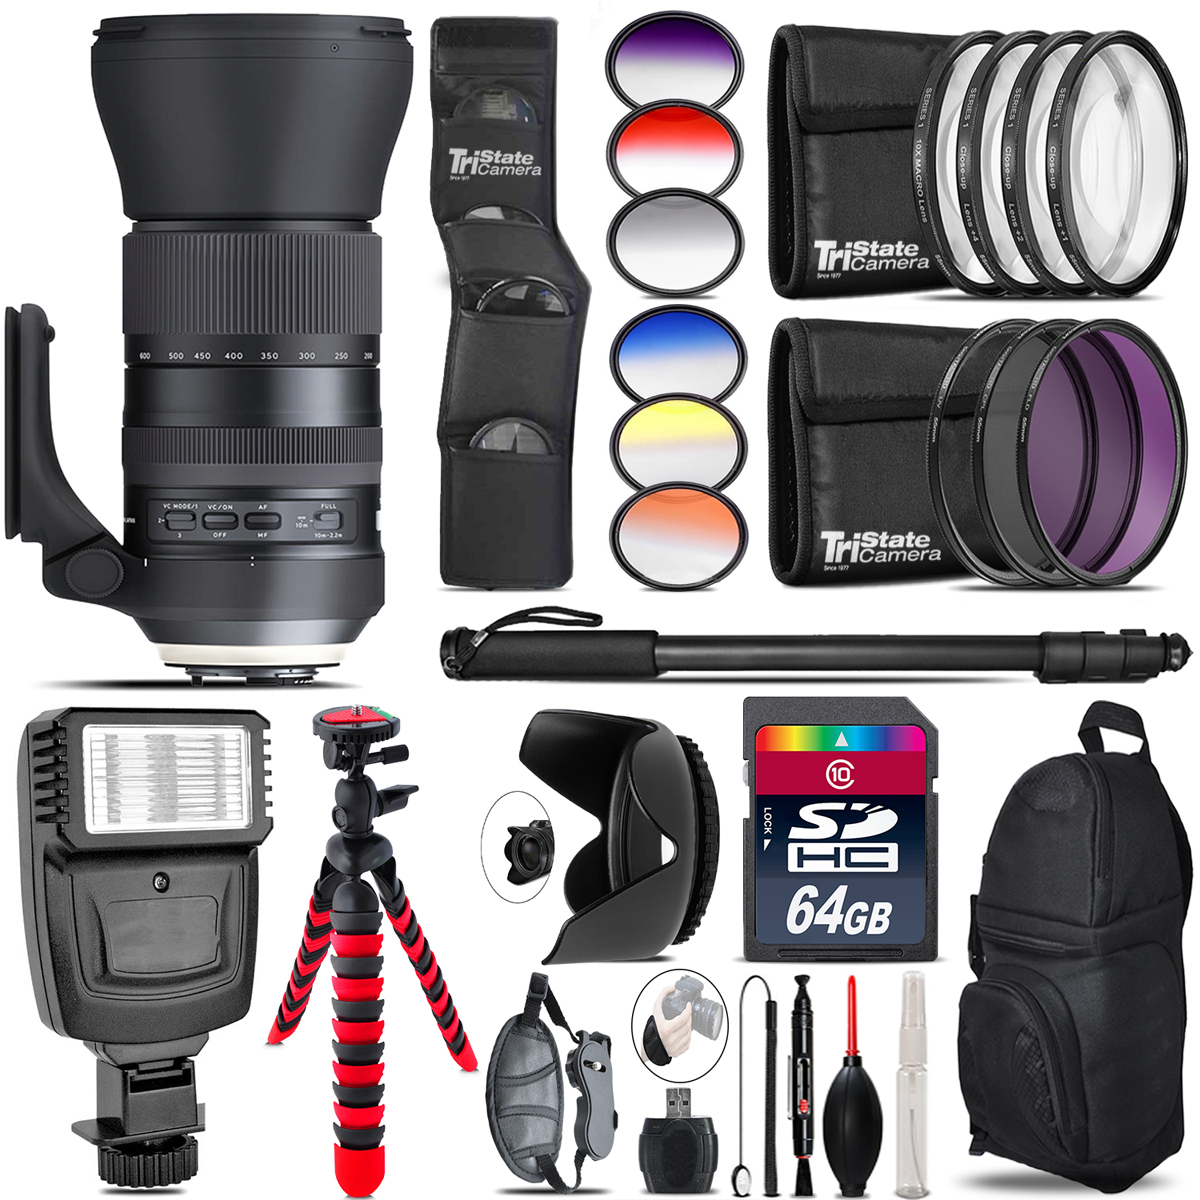 Tamron 150-600mm G2 for Nikon + Flash + Color Filter Set - 64GB Accessory Kit *FREE SHIPPING*